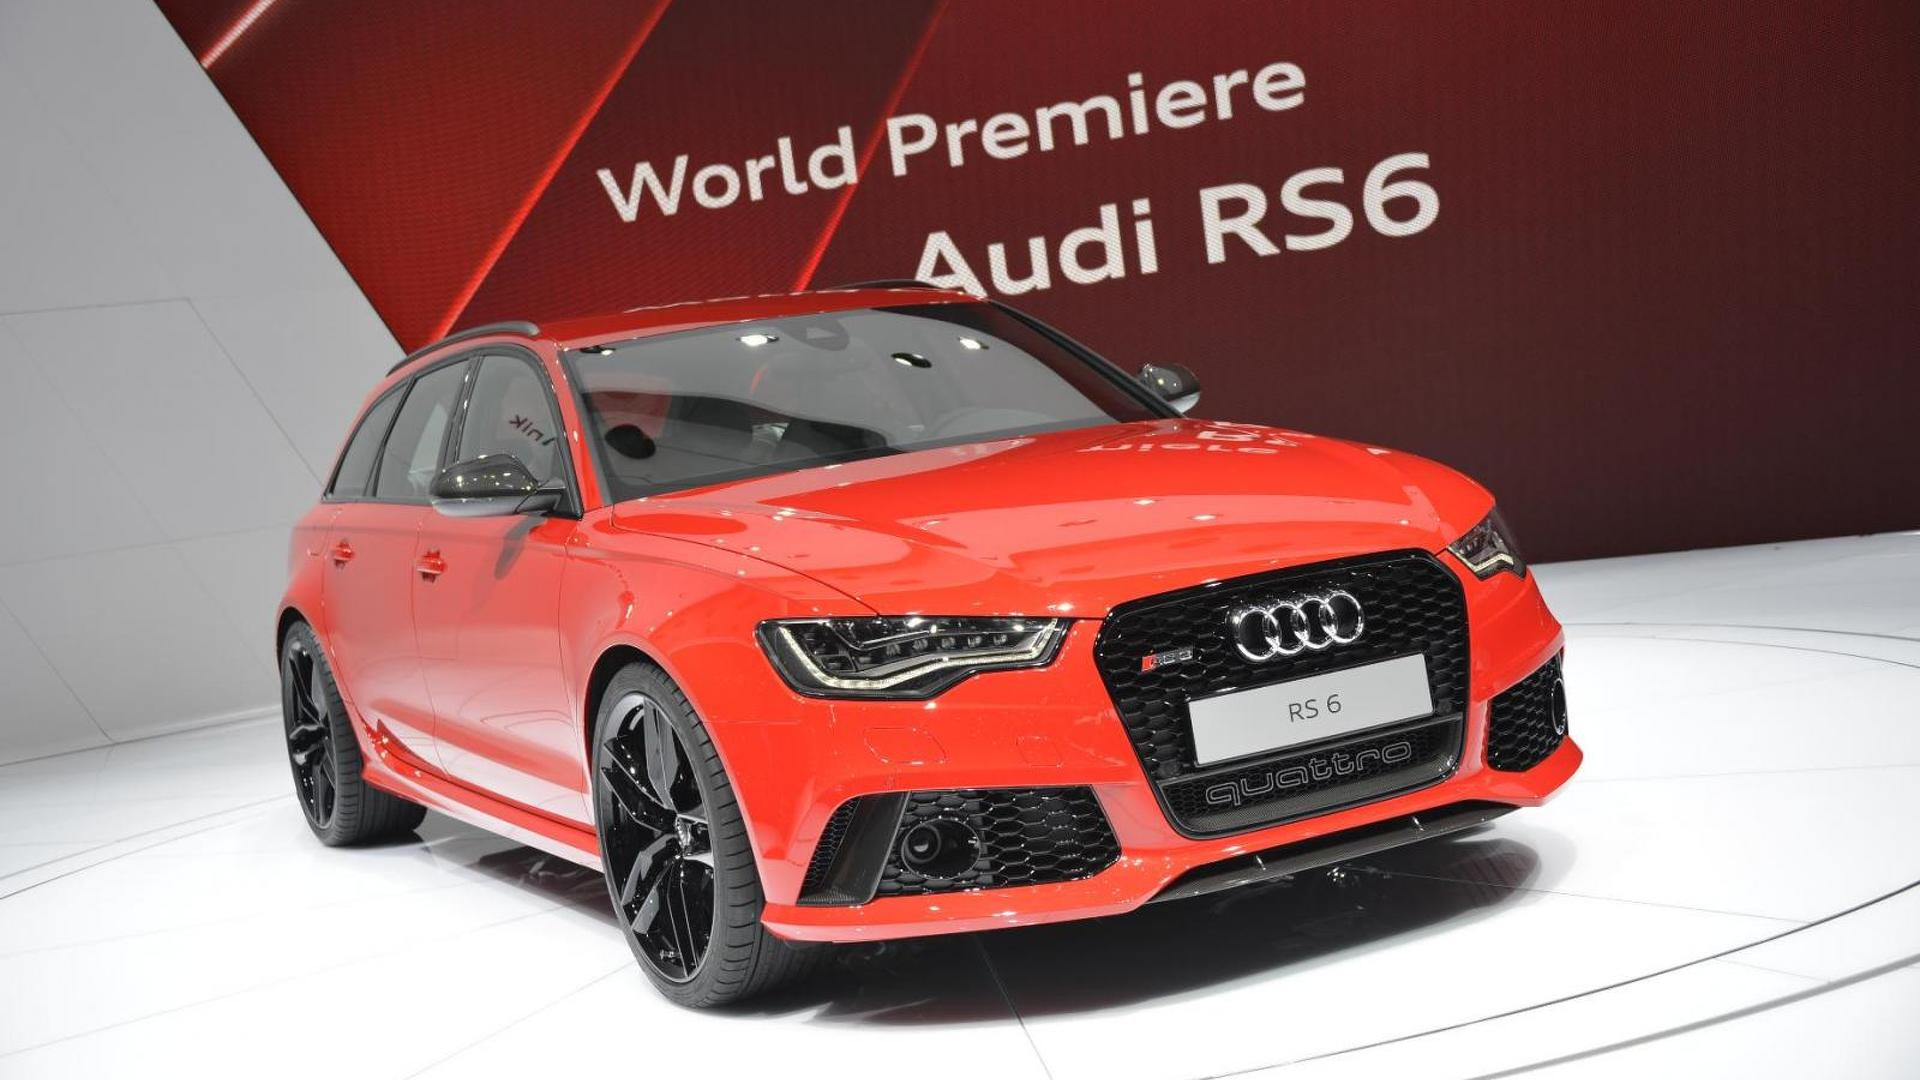 2014 Audi RS6 Avant shines in Geneva